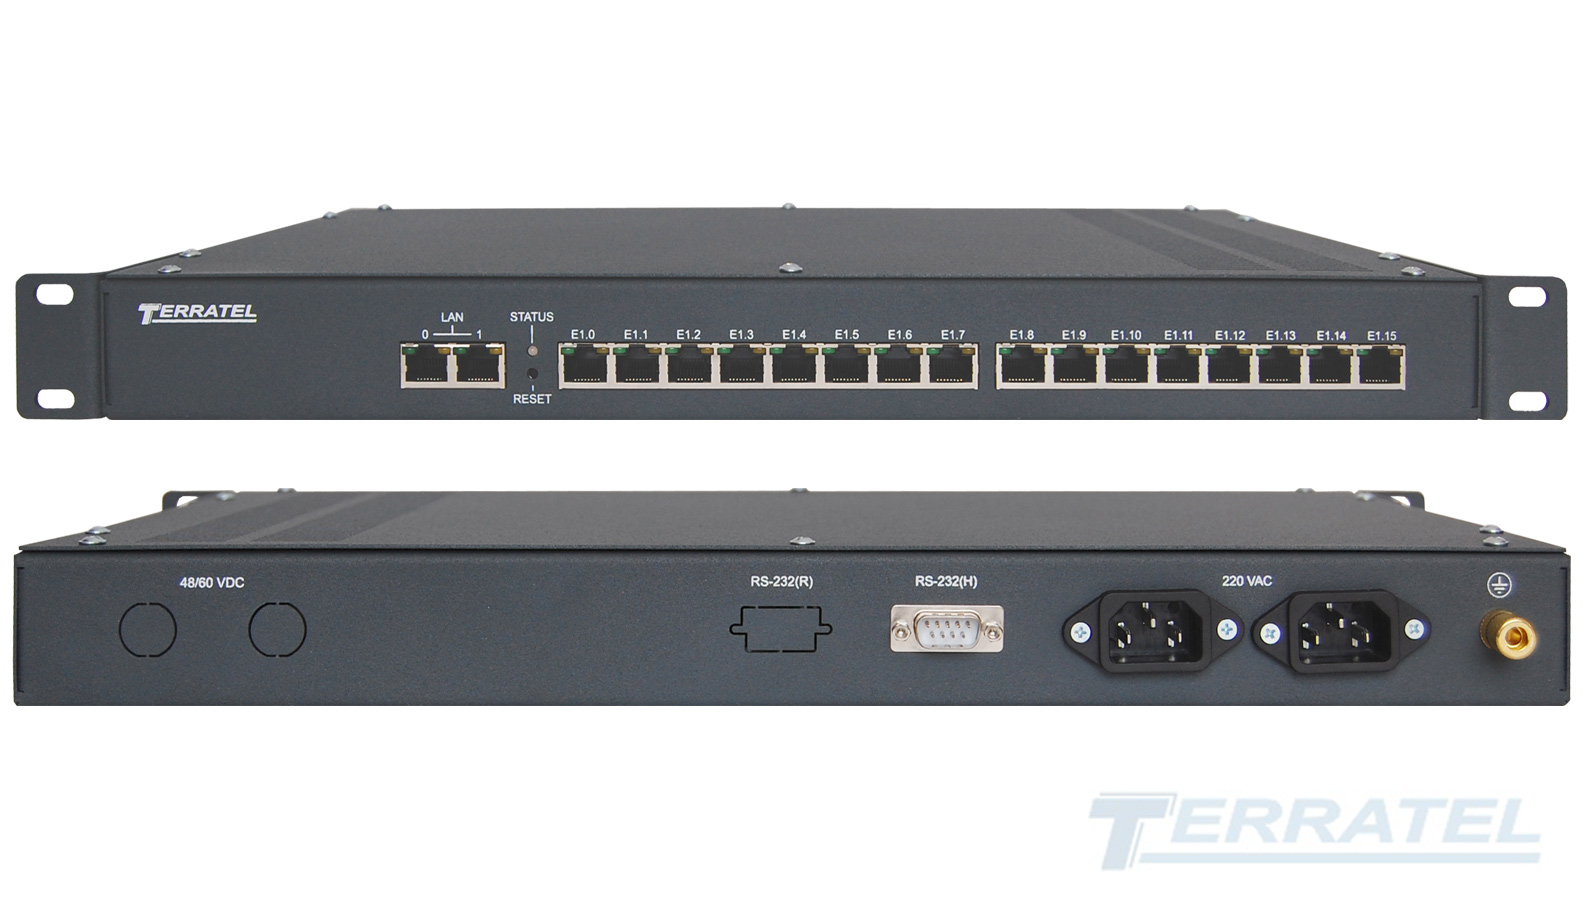 Photo Terratel V5.2 VoIP Gateway, integration to IP, IMS, NGN, codecs G.711, G.723, G.726, G.729, T.38